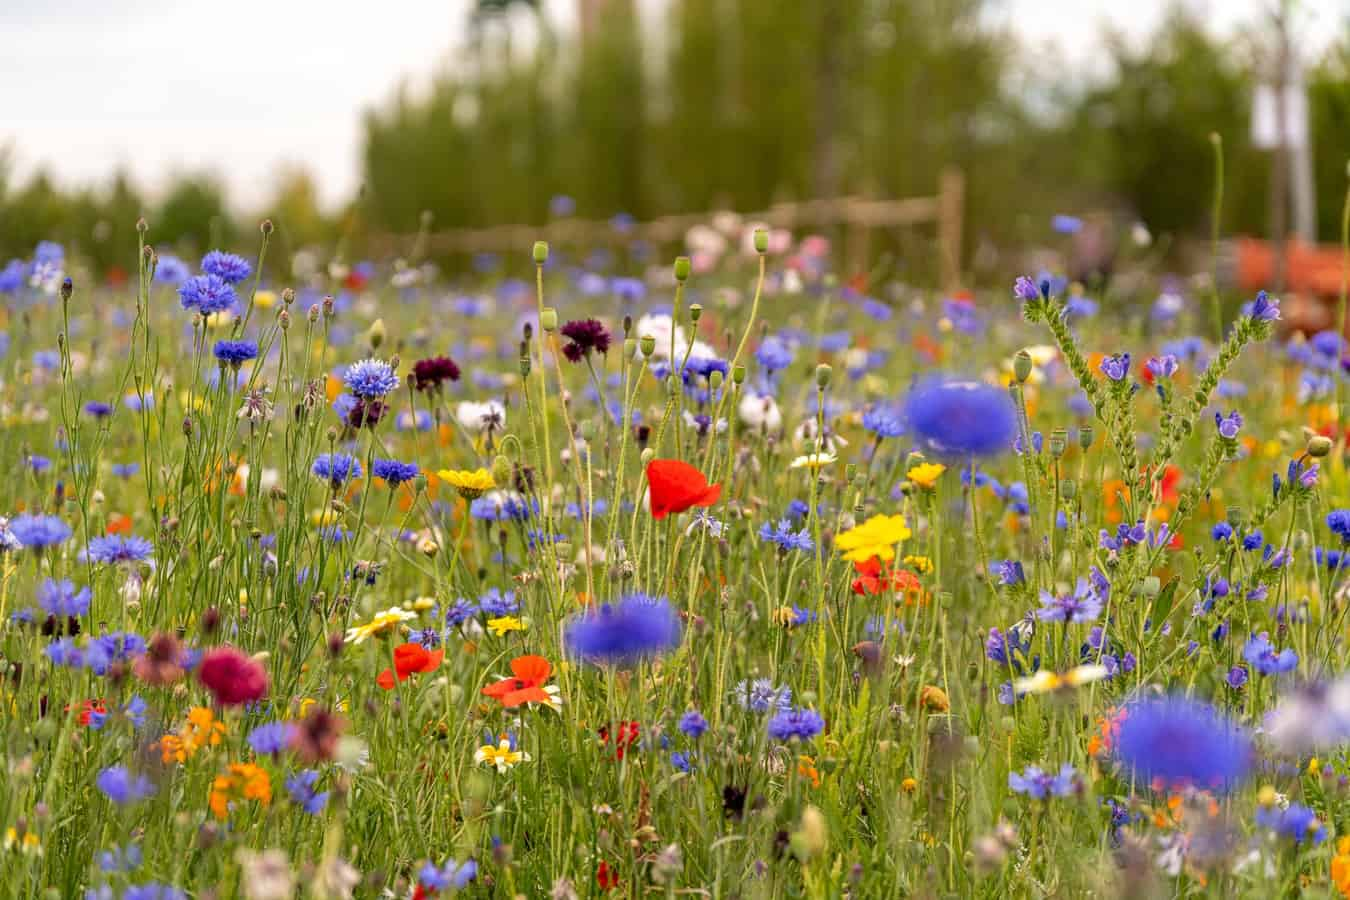 flowers of all colors and grass in a field